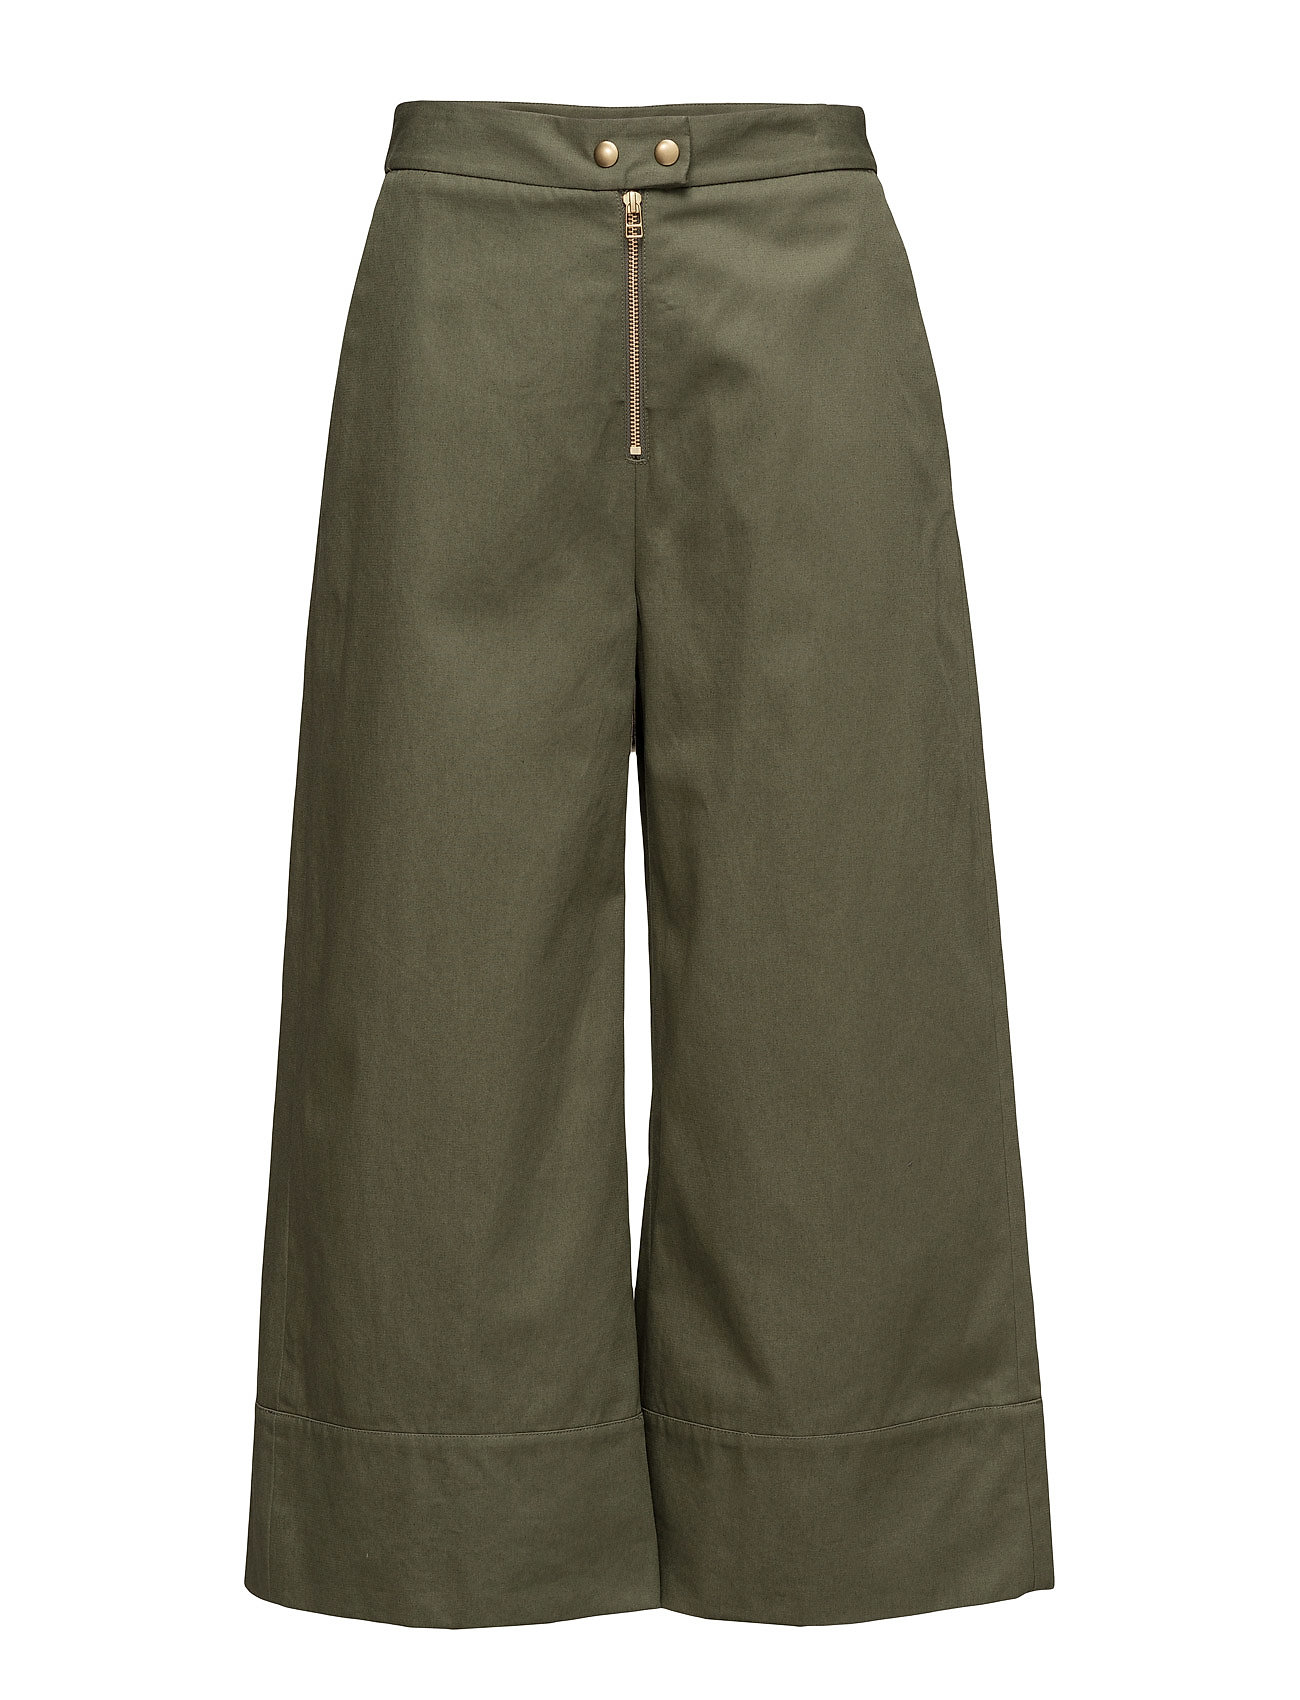 t by alexander wang Garment washed lightweight cotton cropped pants på boozt.com dk